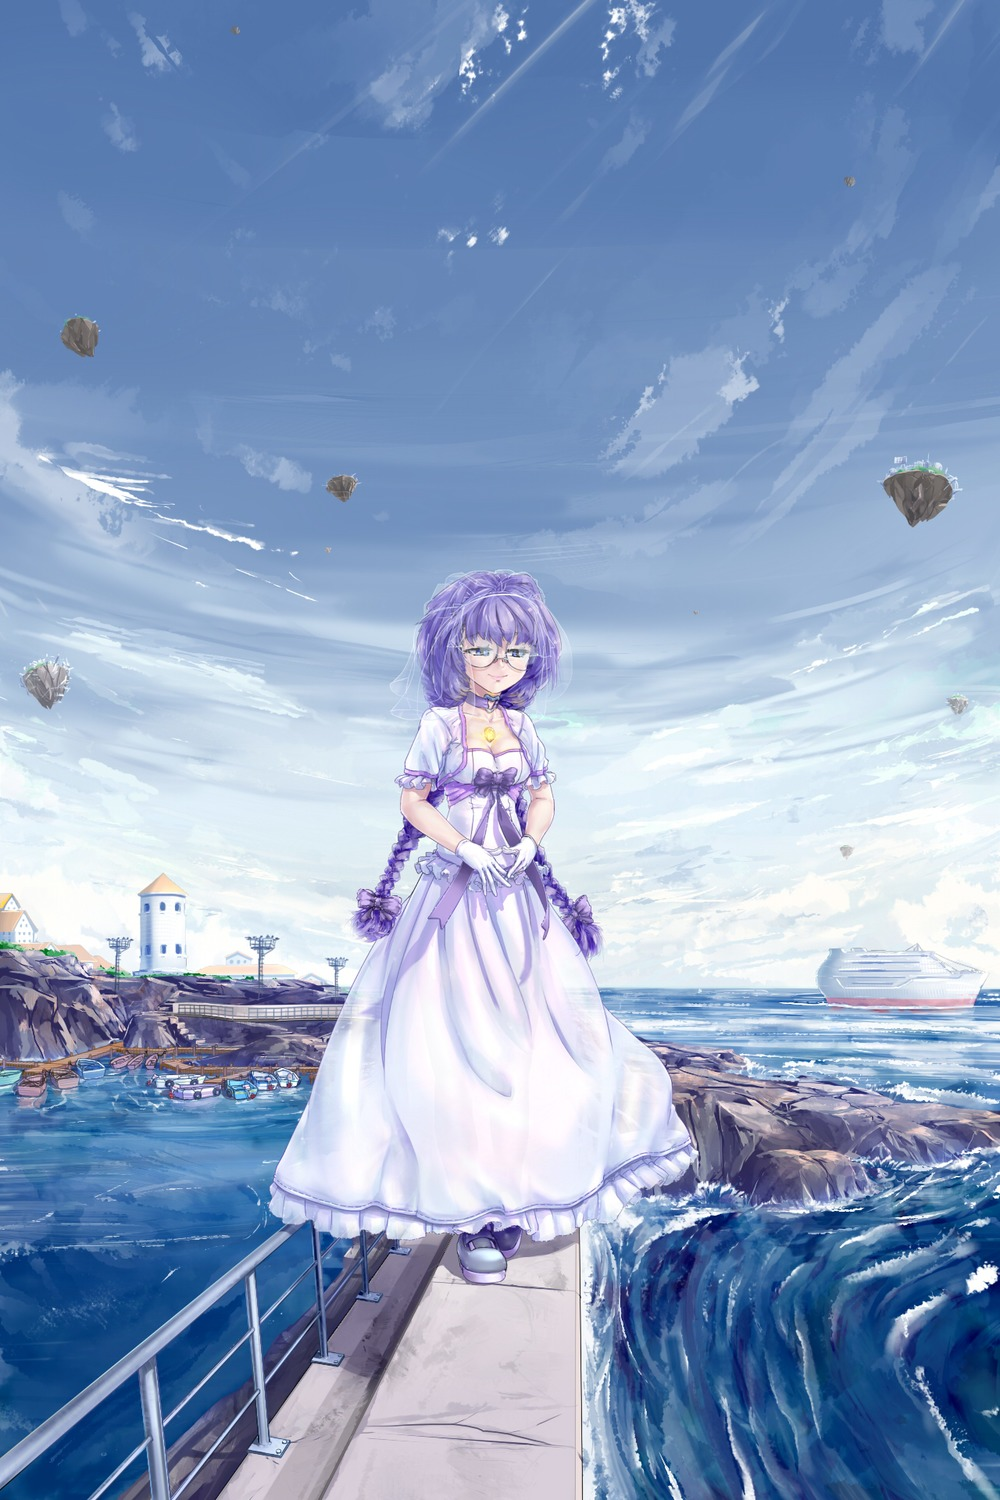 1girl blue_eyes boat bow braid breasts building choker cleavage dress elemental_gelade f2d_(artist) floating_island frills glasses gloves heart highres long_hair ocean outdoors pier purple_hair rock sea see-through ship sky smile solo twin_braids veil viro virzoeve_eclairouer water